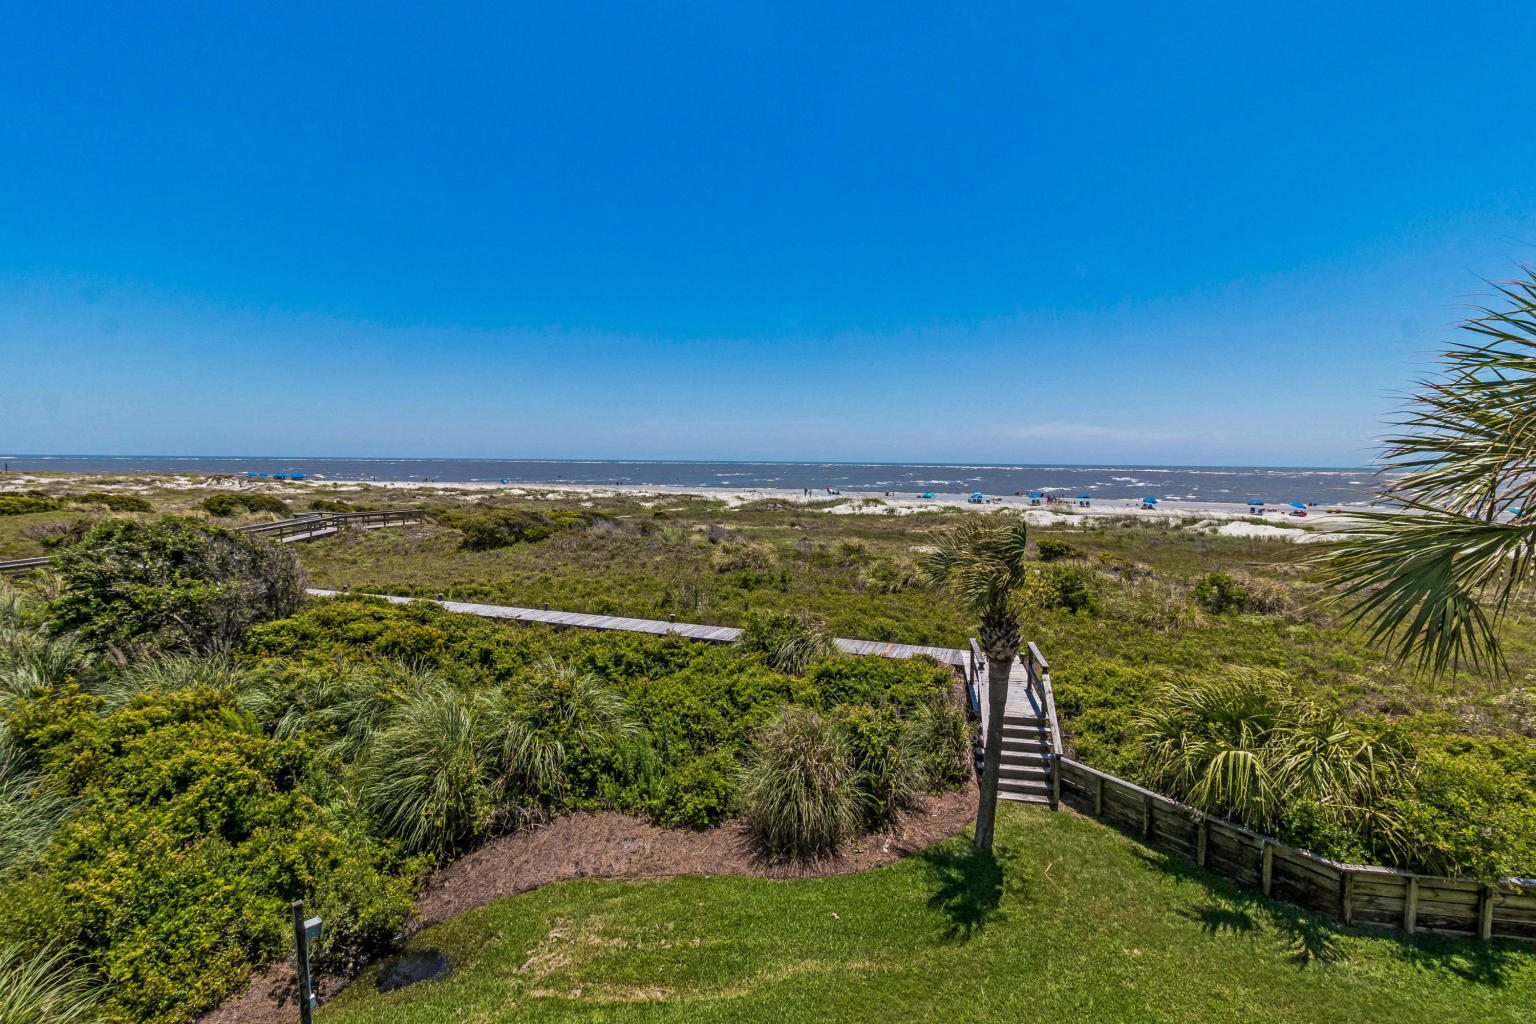 Beach Club Villas Homes For Sale - 65 Beach Club Villas, Isle of Palms, SC - 28